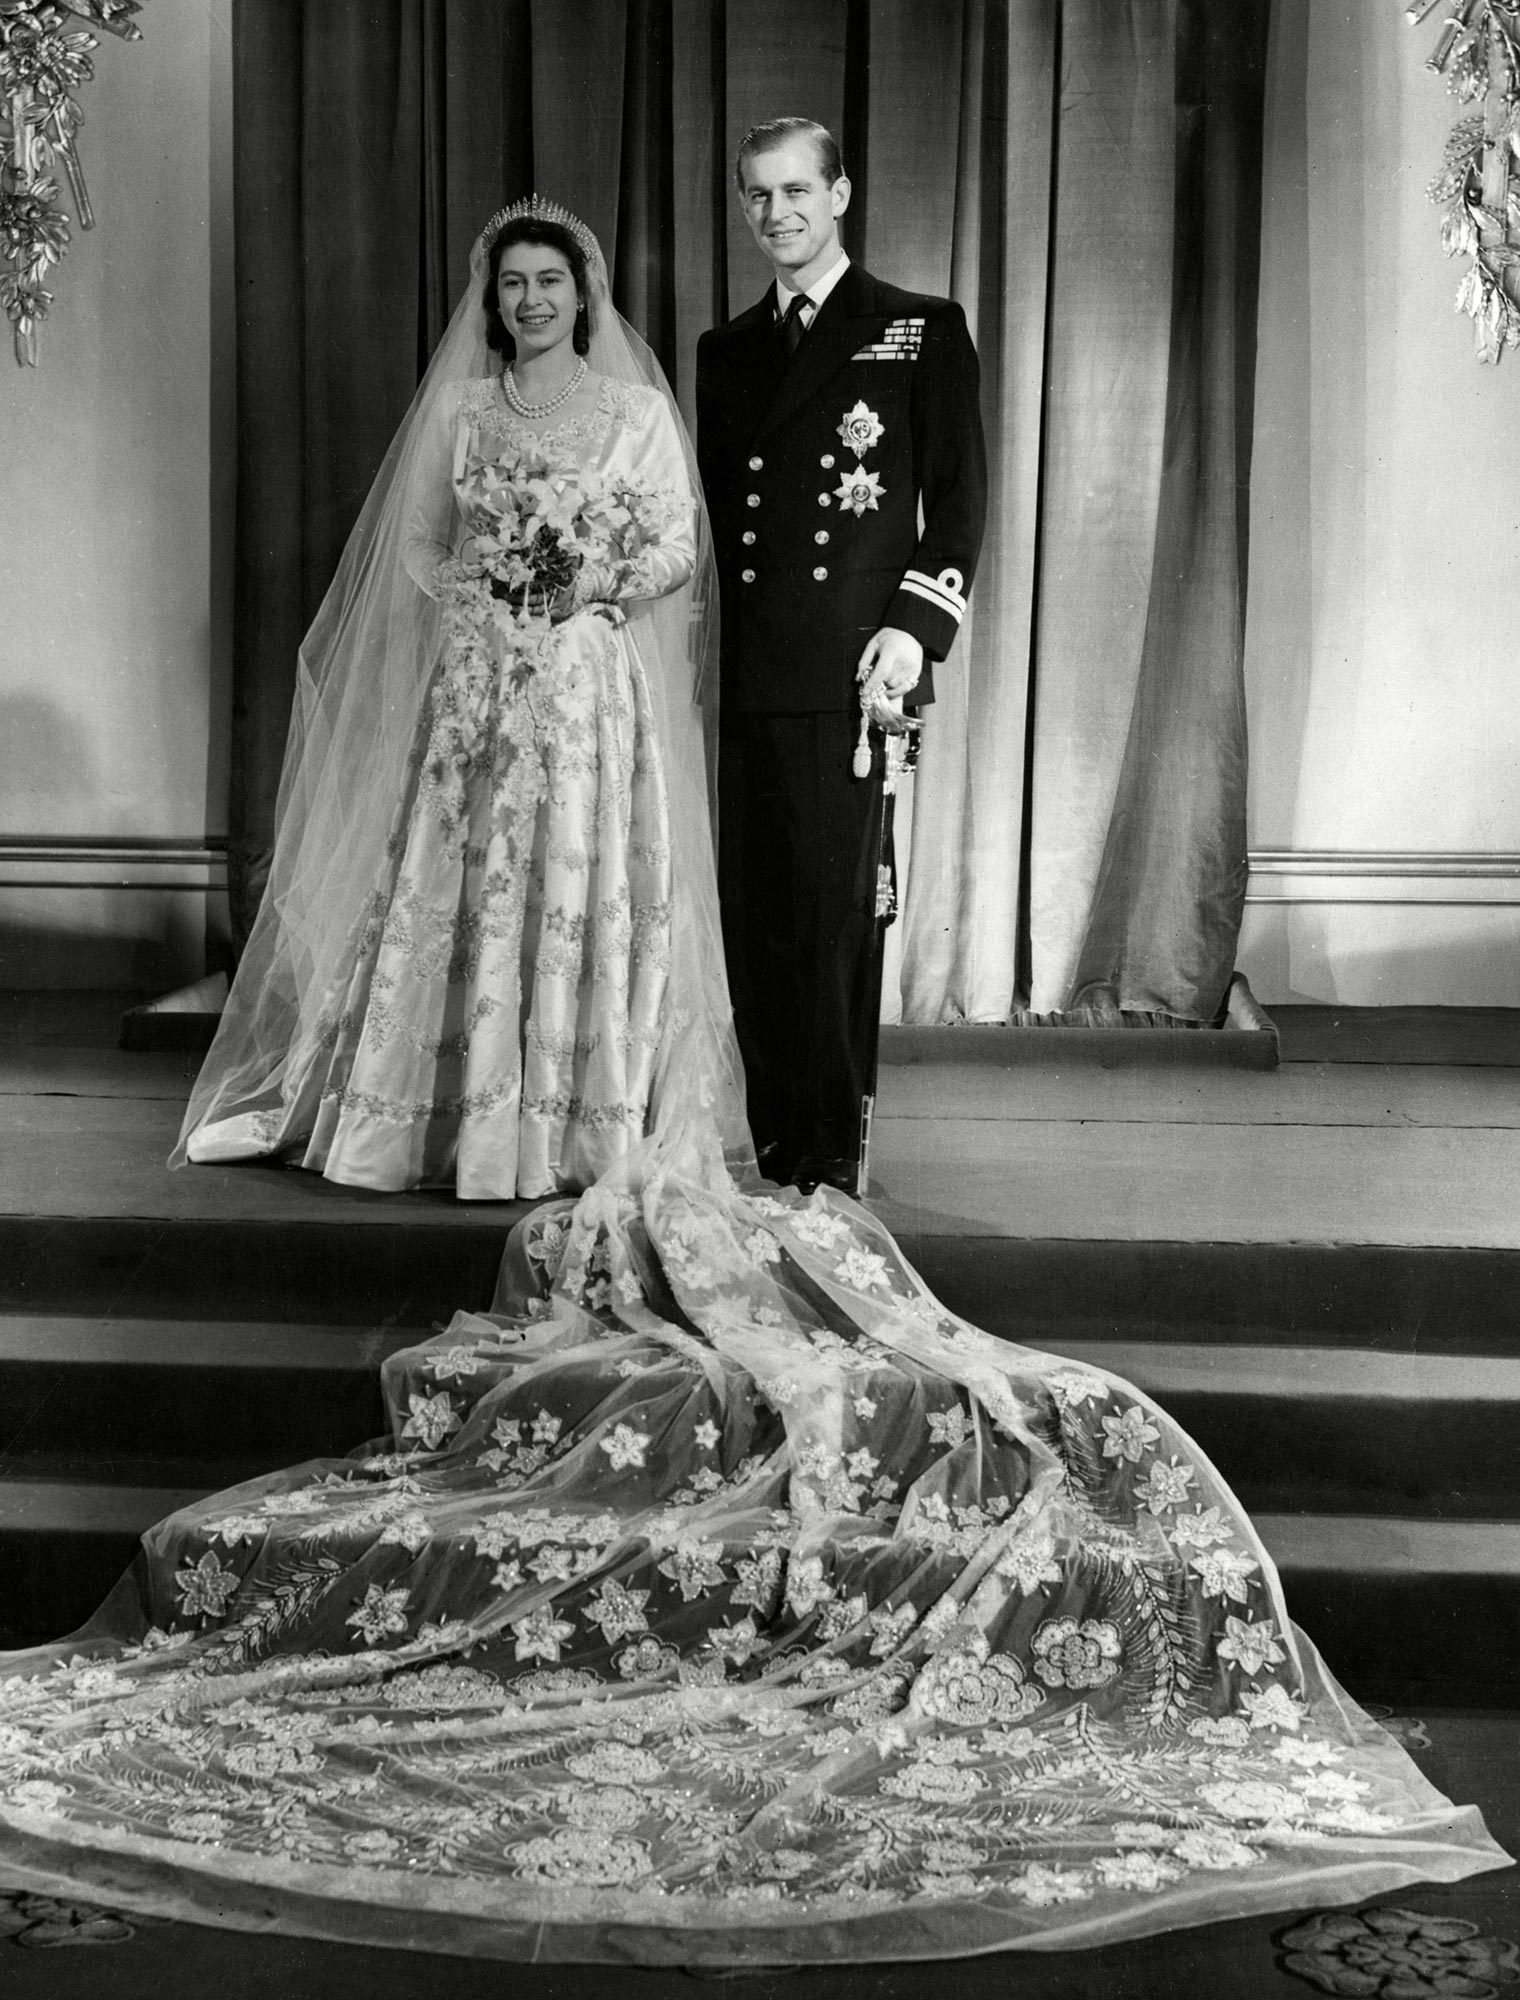 Queen Elizabeth II and Prince Philip marriage